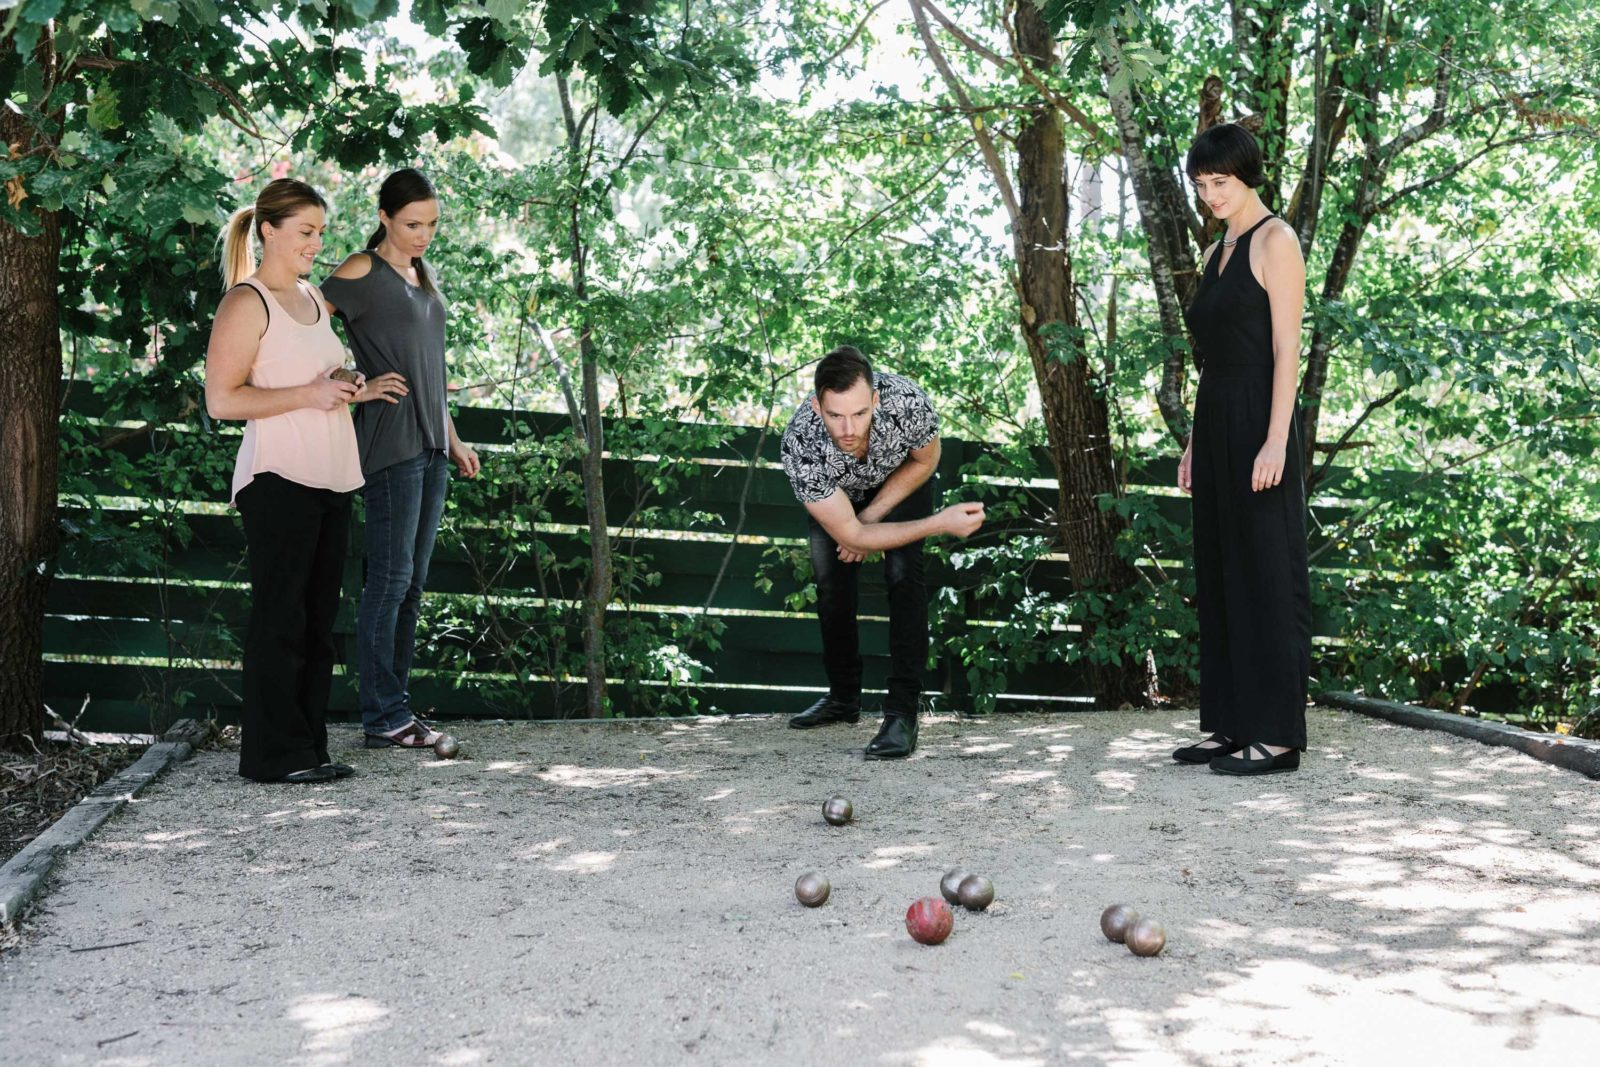 Sparkling Pinot and Petanque